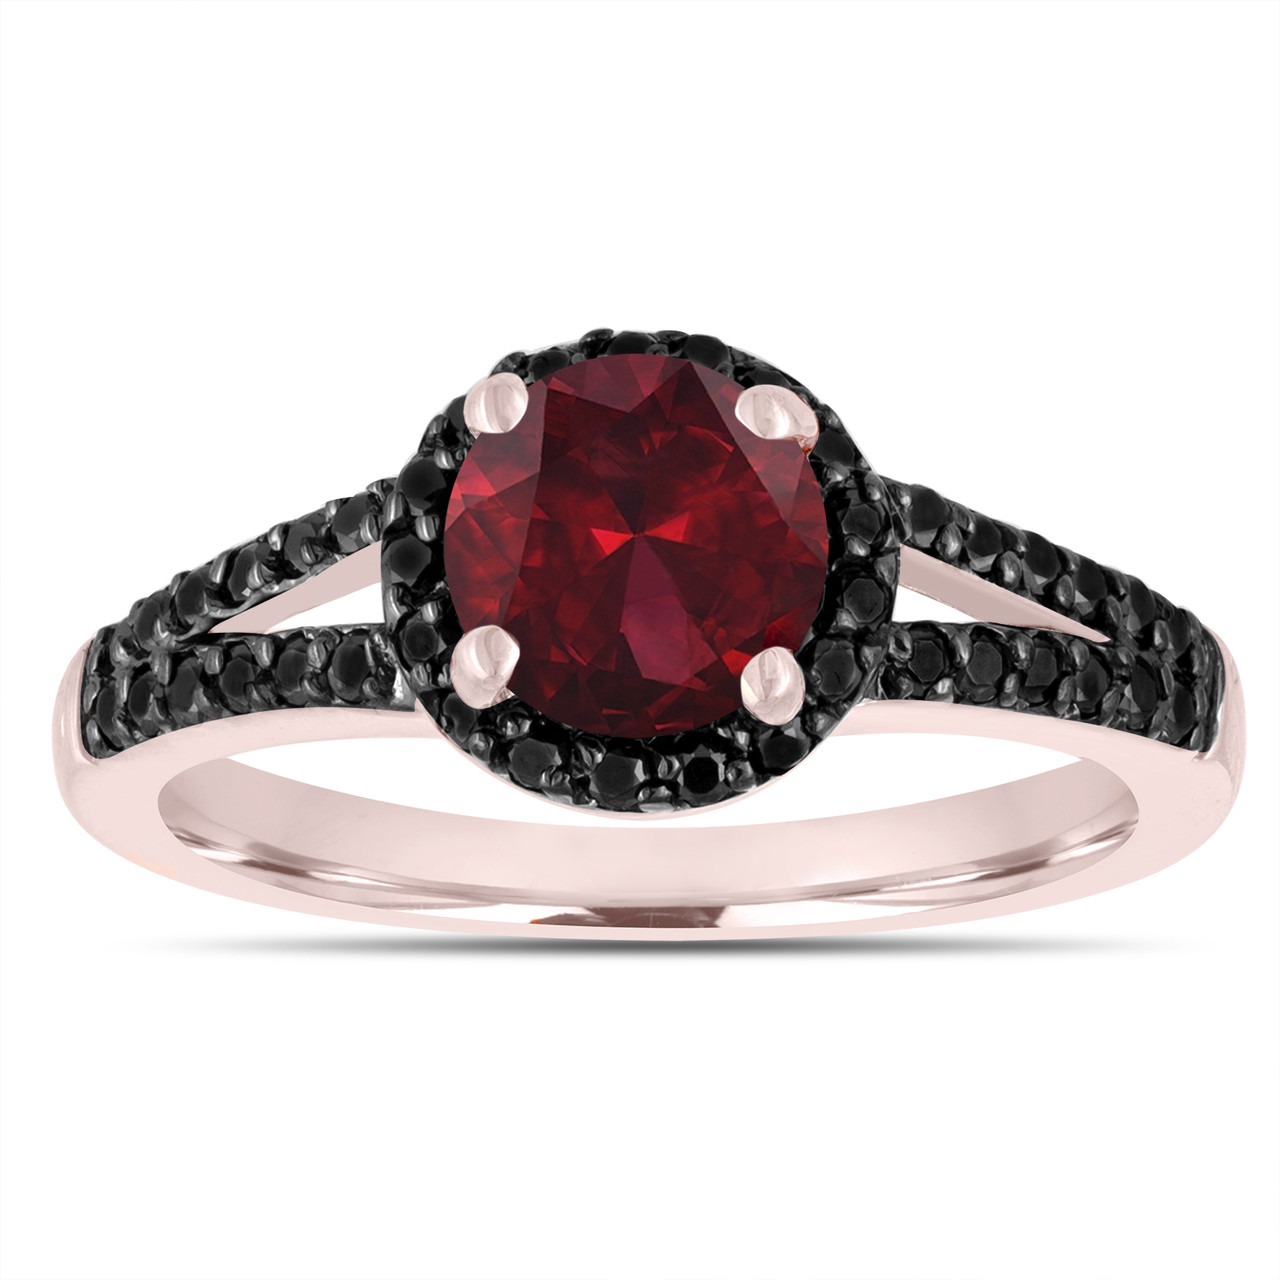 Red Garnet Engagement Ring 14k Rose Gold 1 44 Carat Unique Halo Handmade Birth Stone